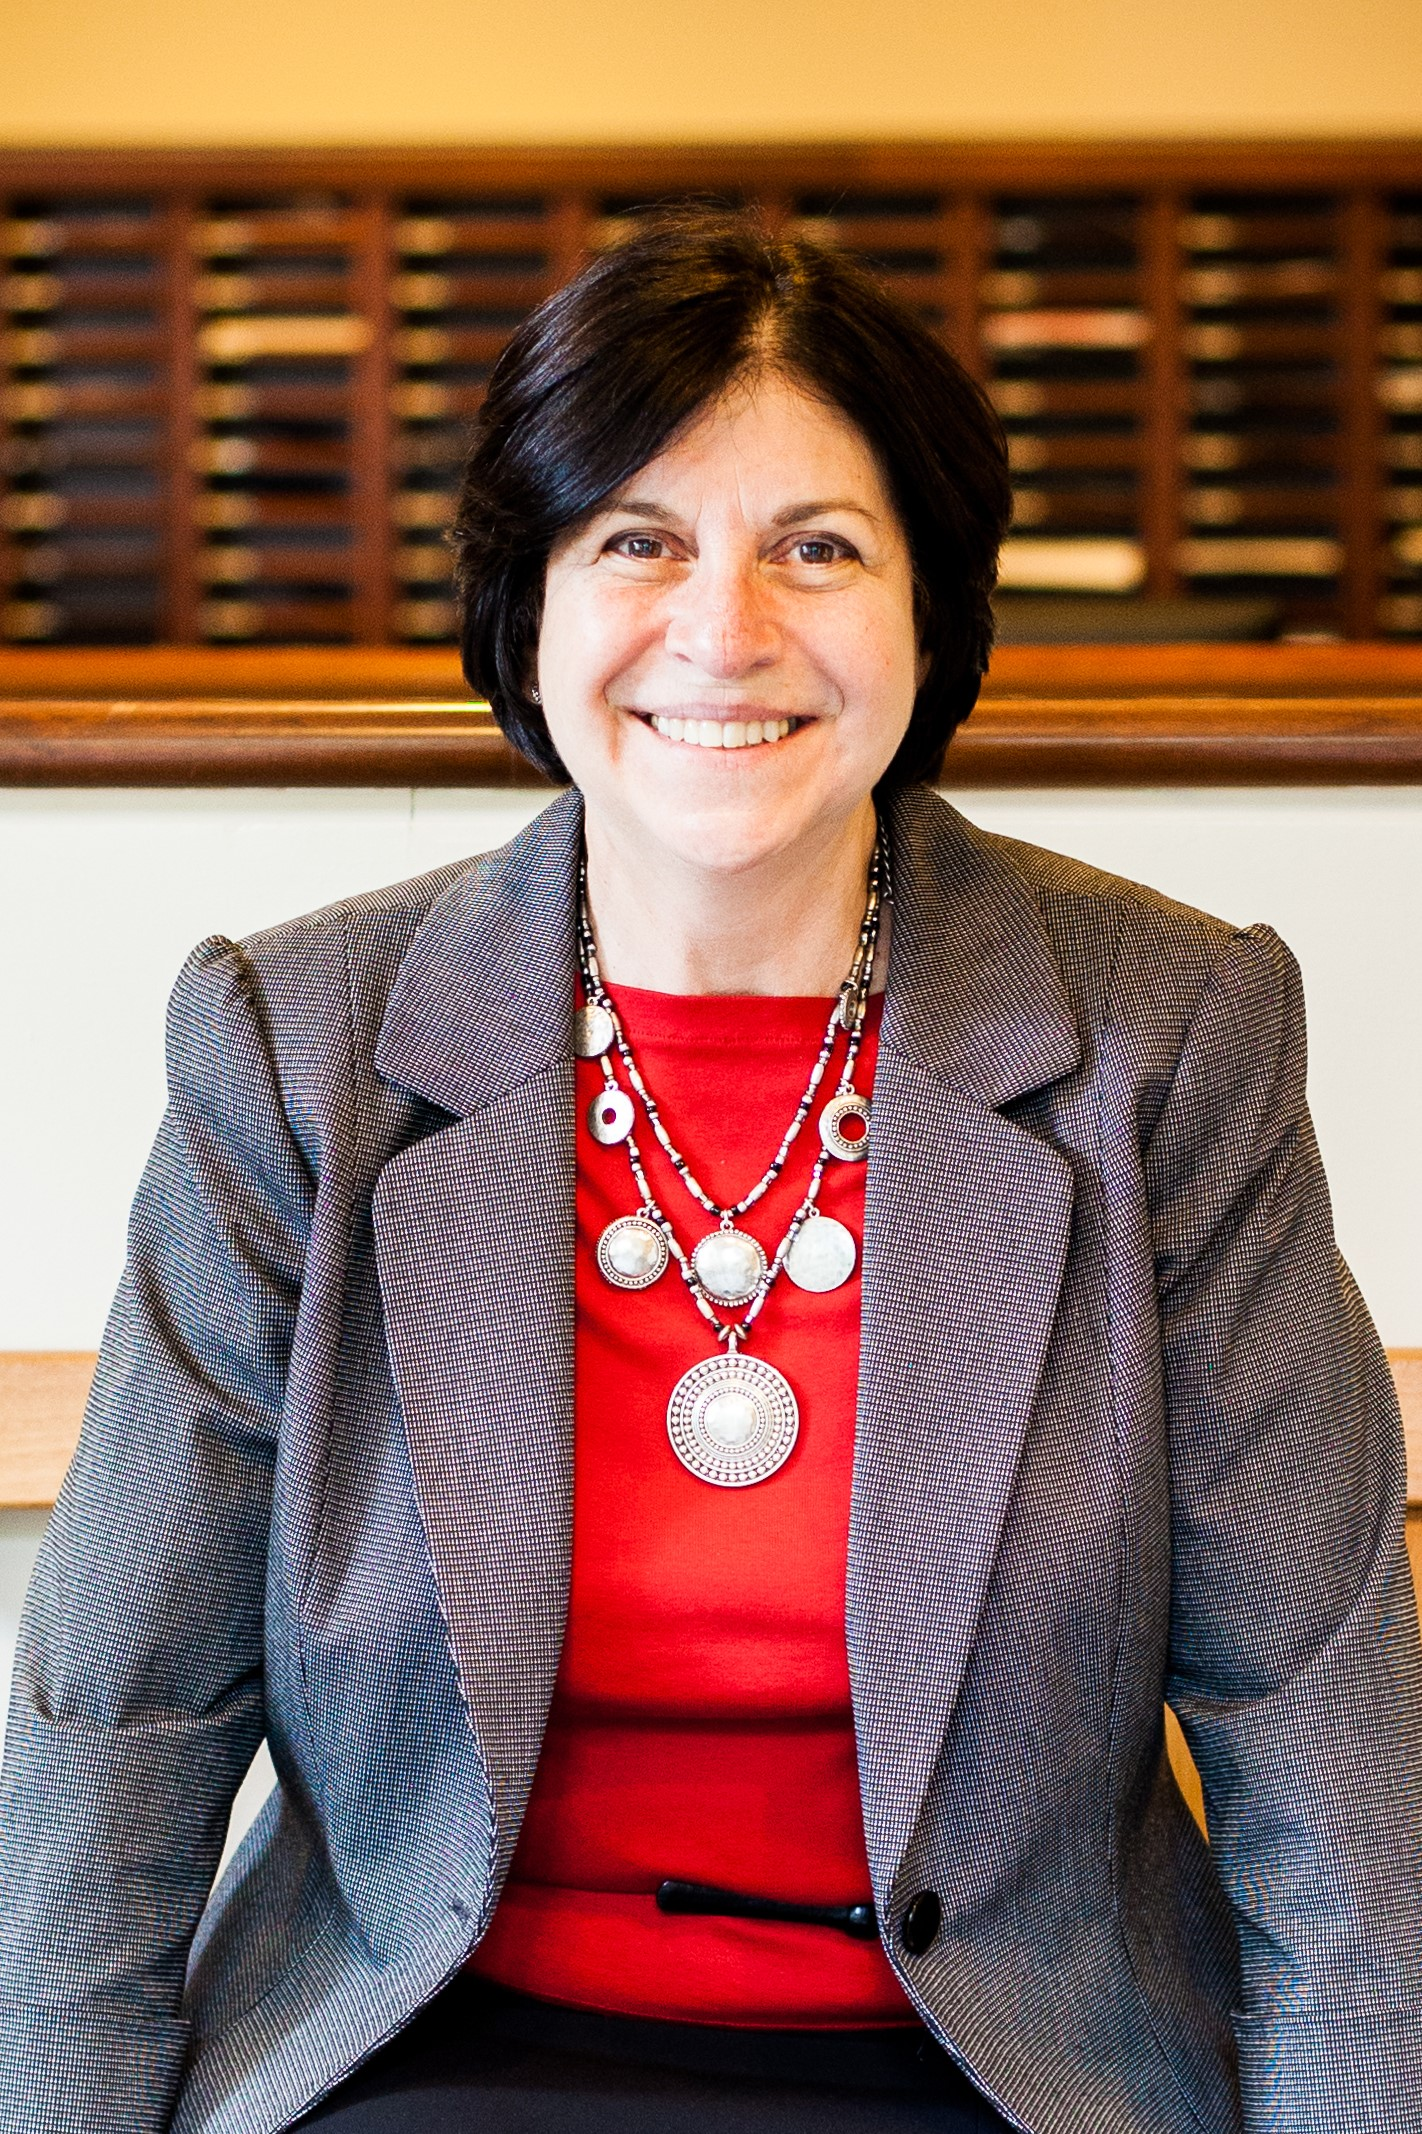 Susan L. Krinsky, Associate Dean for Student Affairs and Communications at the University of Maryland and immediate-past Chair of the Board of Trustees of the Law School Admission Council.